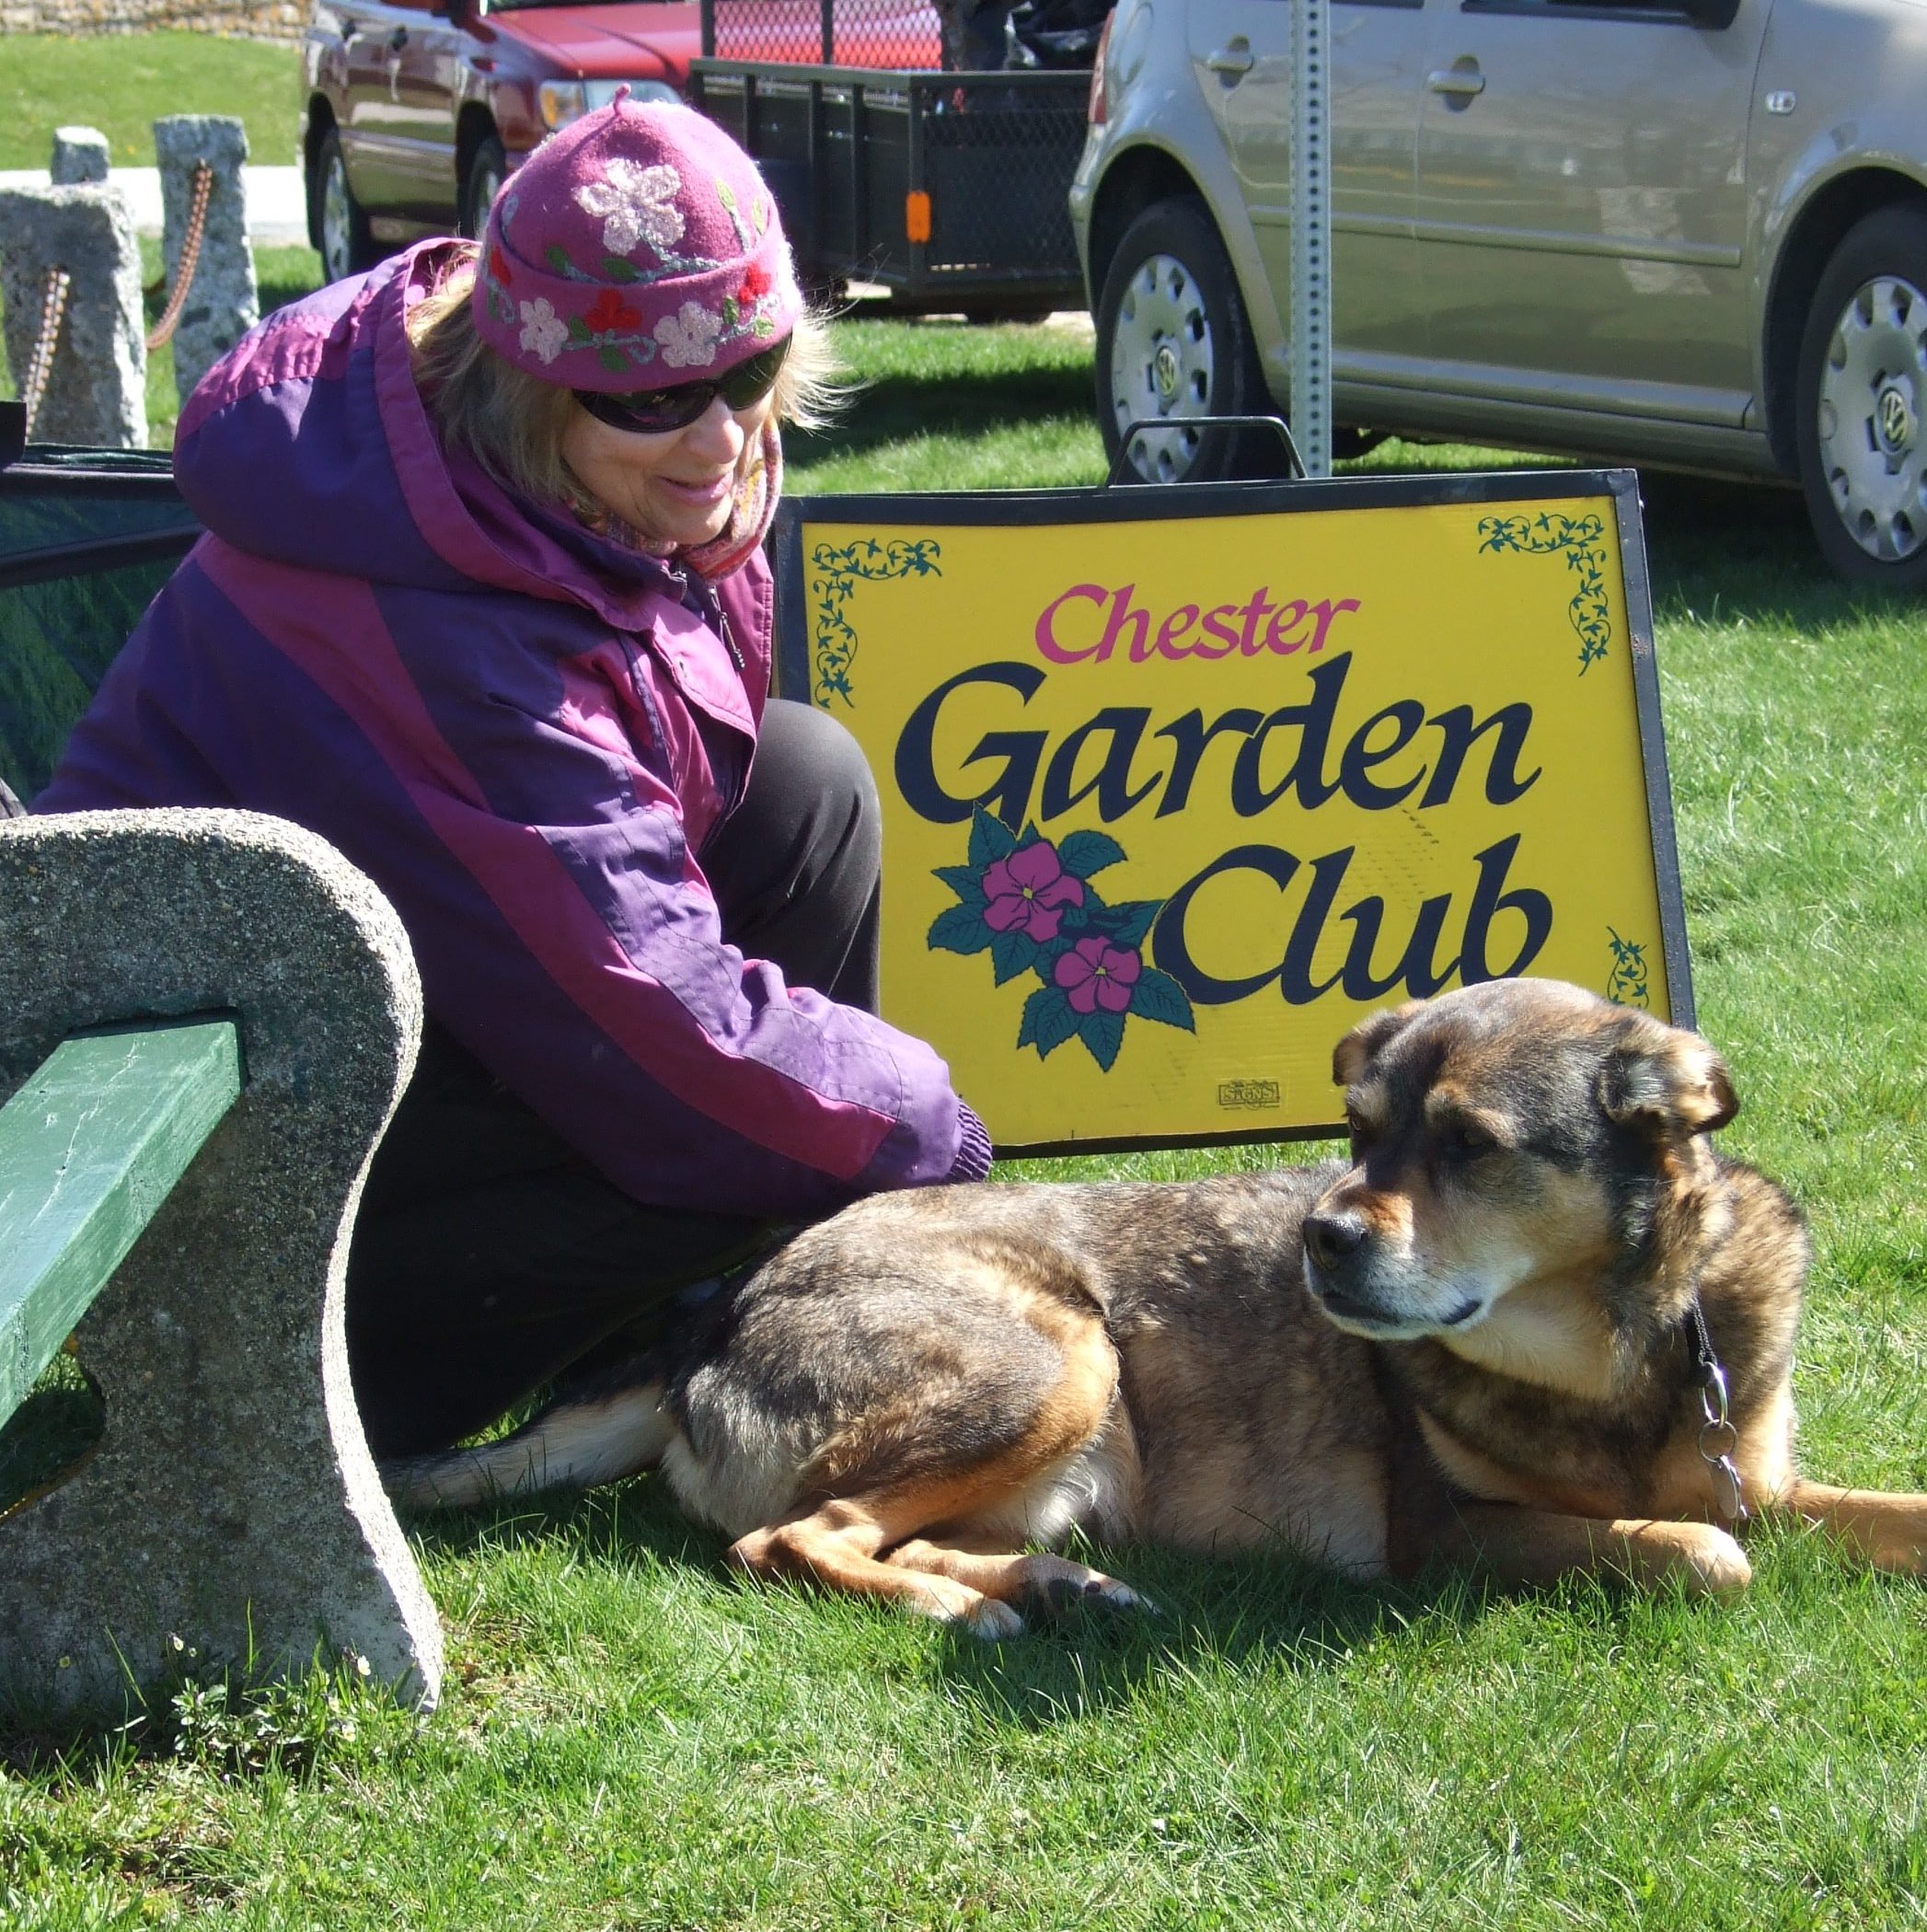 the garden club's mascot takes a rest